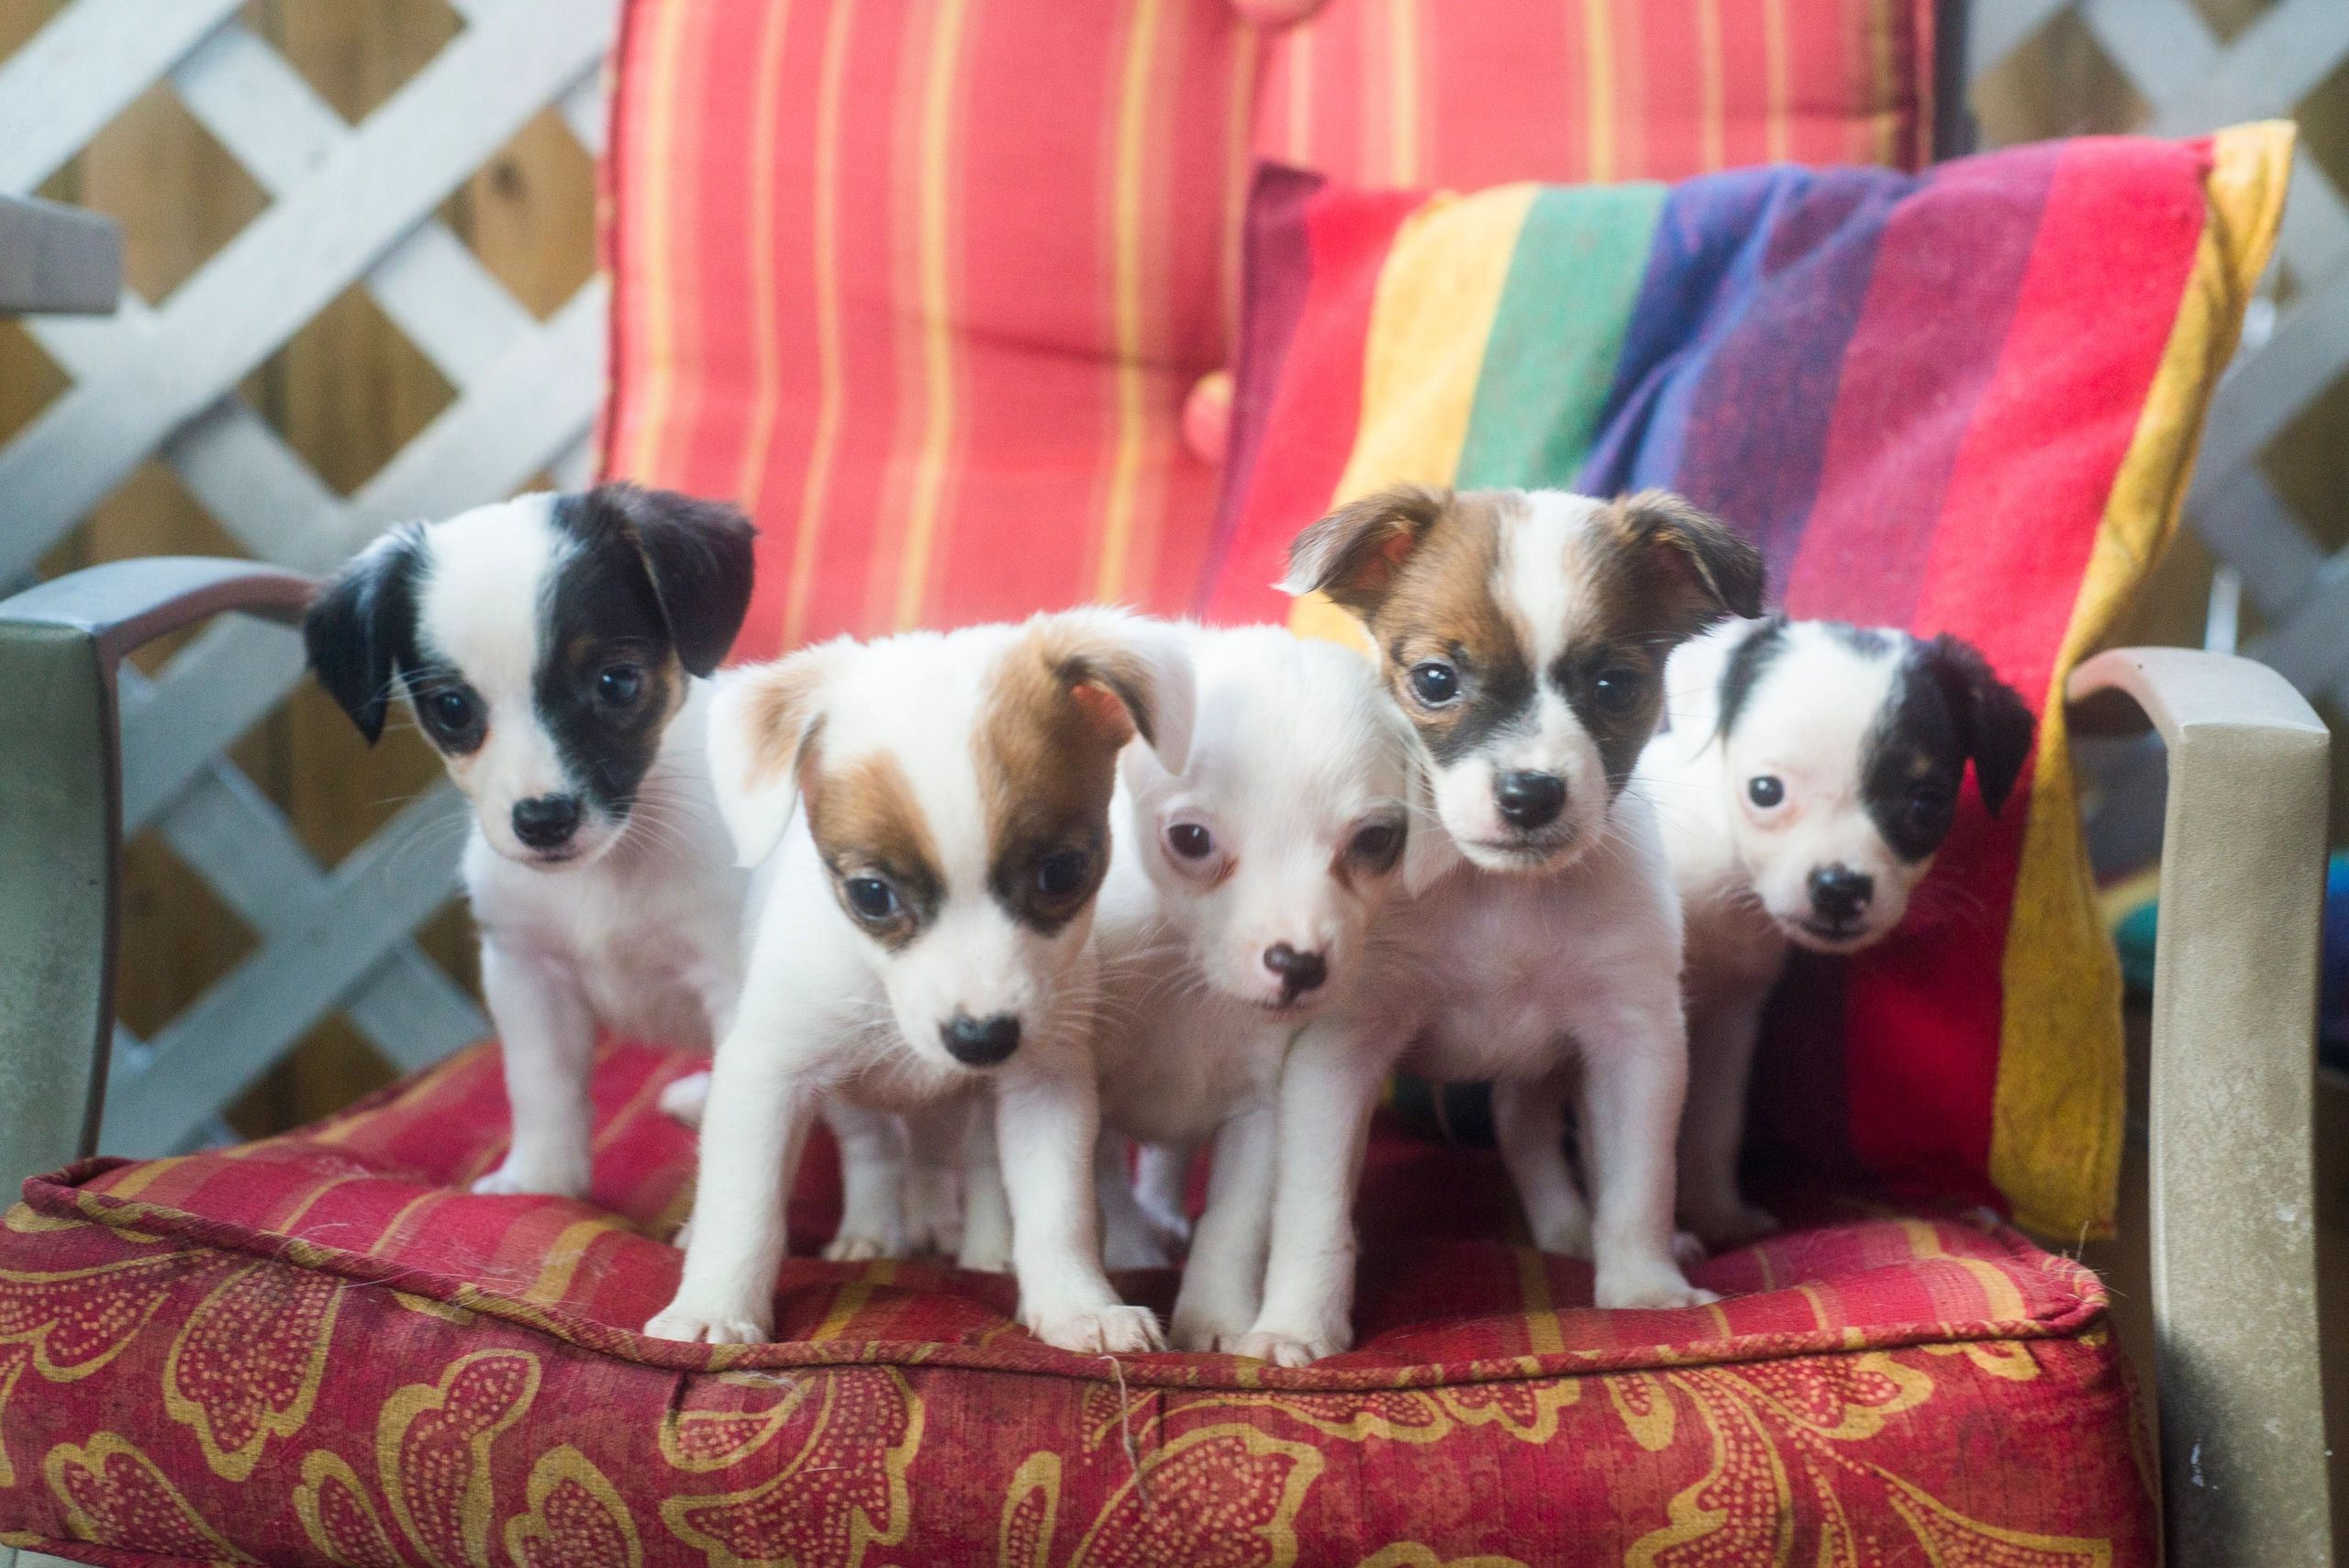 Five puppies stand side by side on a red chair.